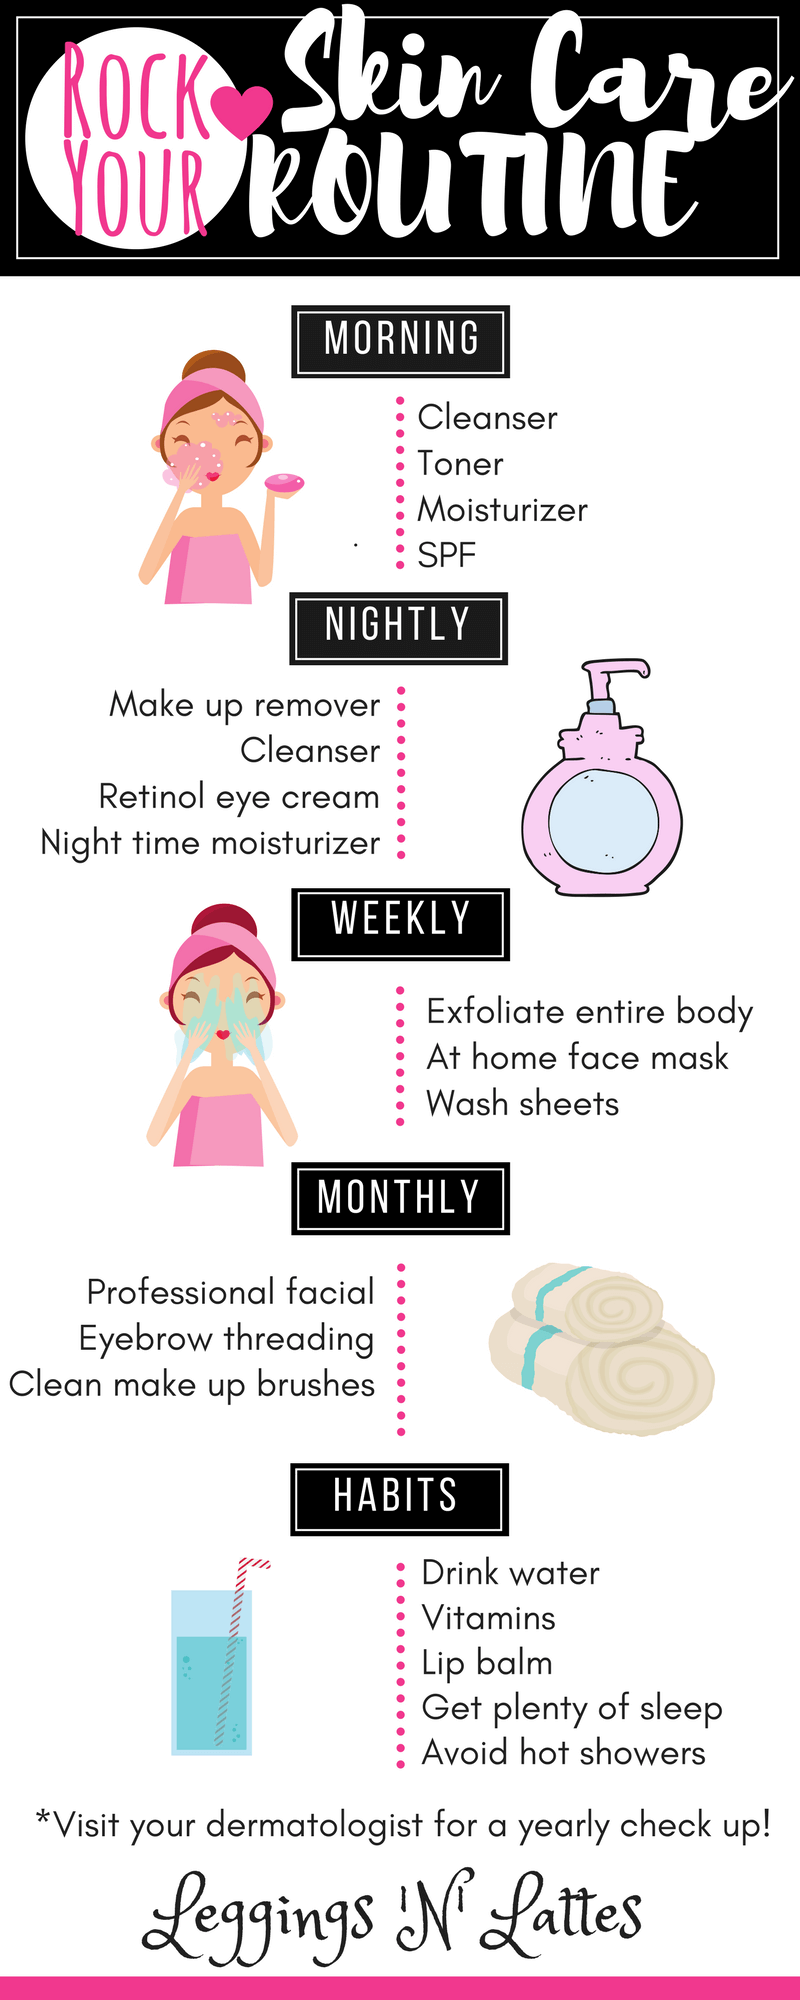 This Sounds So Helpful Definitely Trying This I Ll Tell U How It Goes X How Does It Work For U X Skin Care Advices Beauty Tips For Women Skin Care